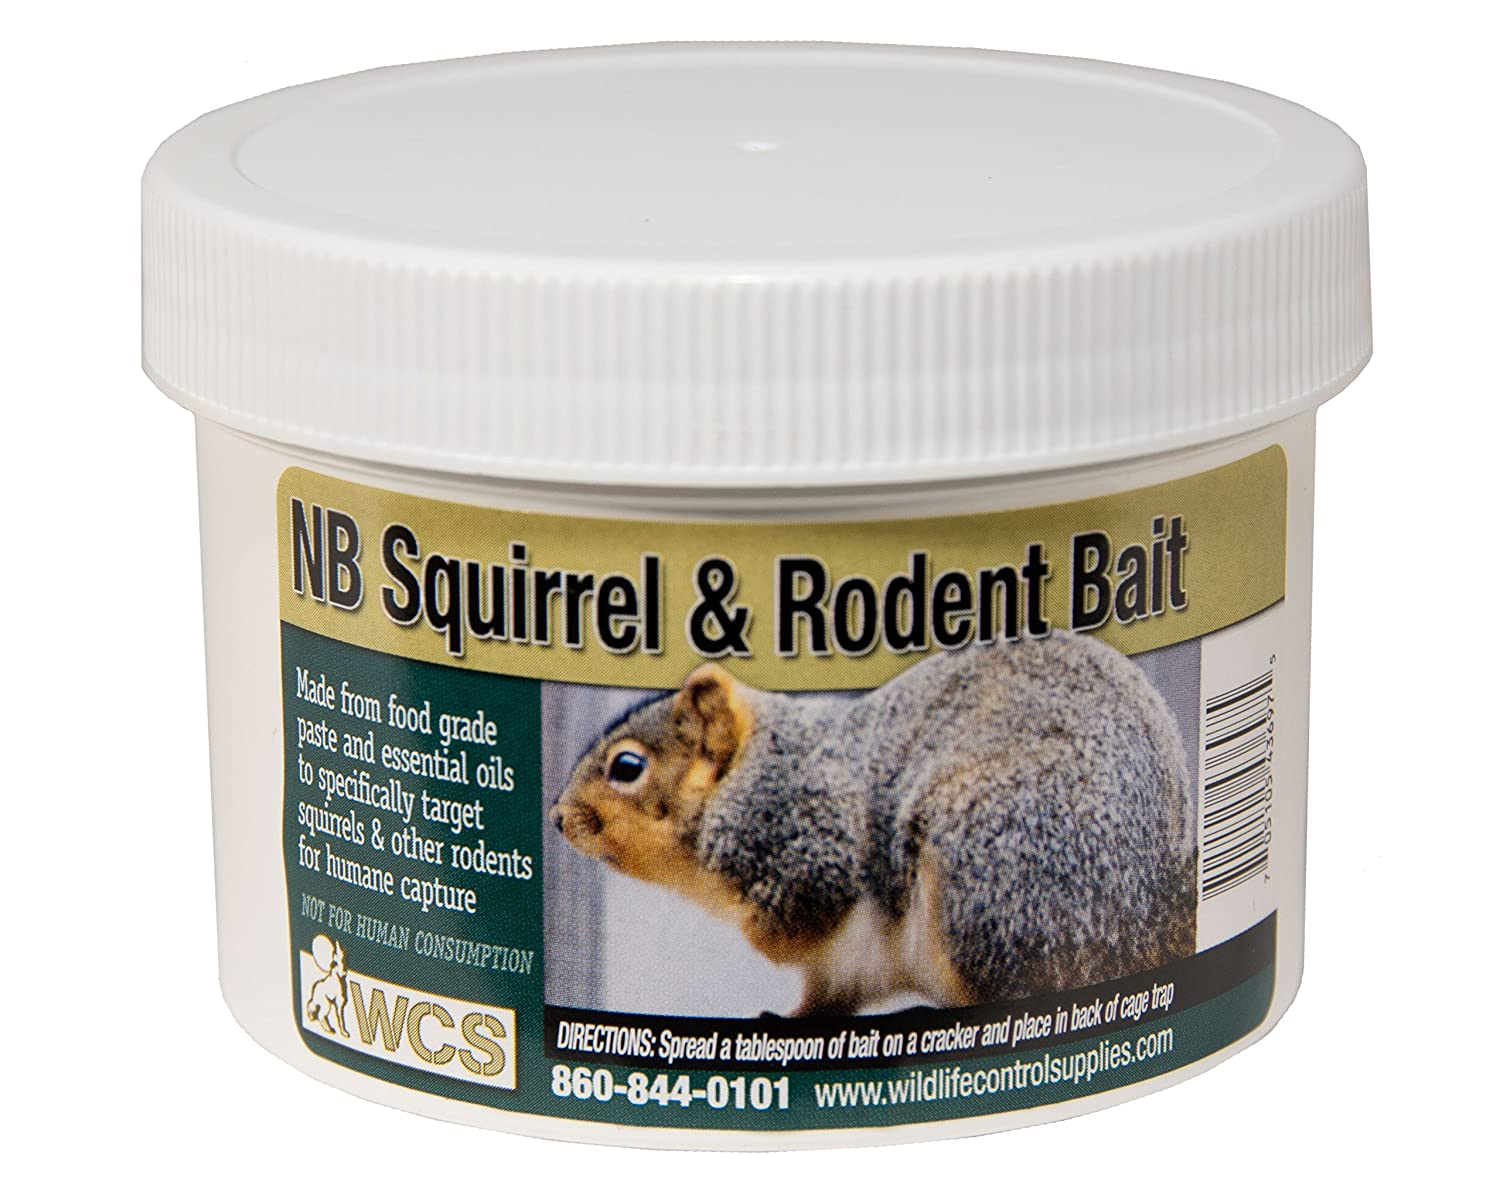 Wildlife Control Supplies WCS NB Squirrel and Rodent Pest Bait